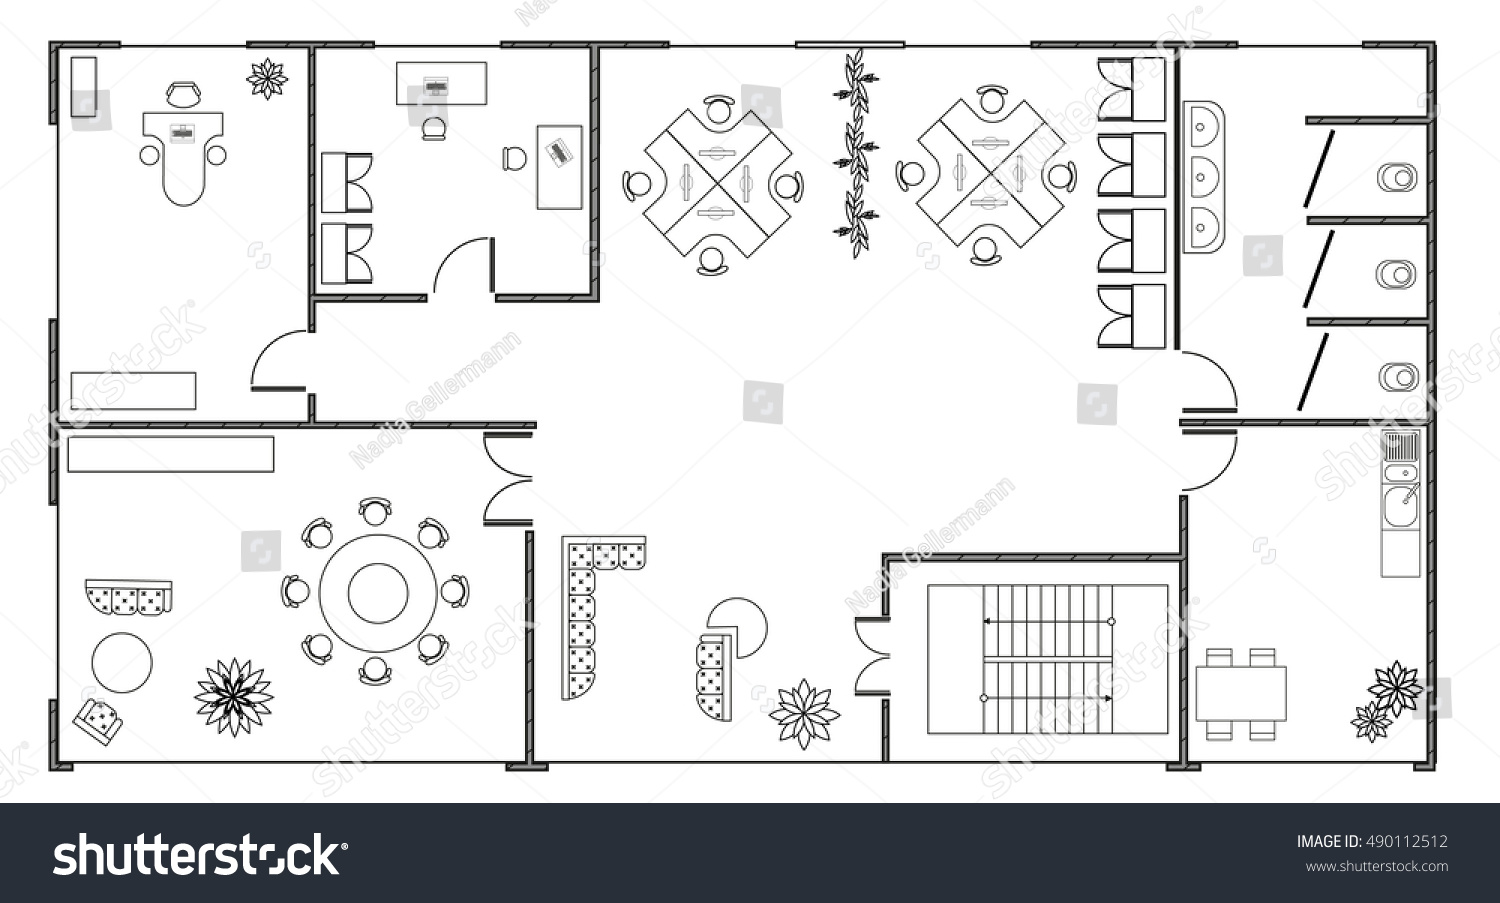 office plan interiors. Office Plan Interiors. Architecture With A Modern Furniture In Top View. Interiors Small